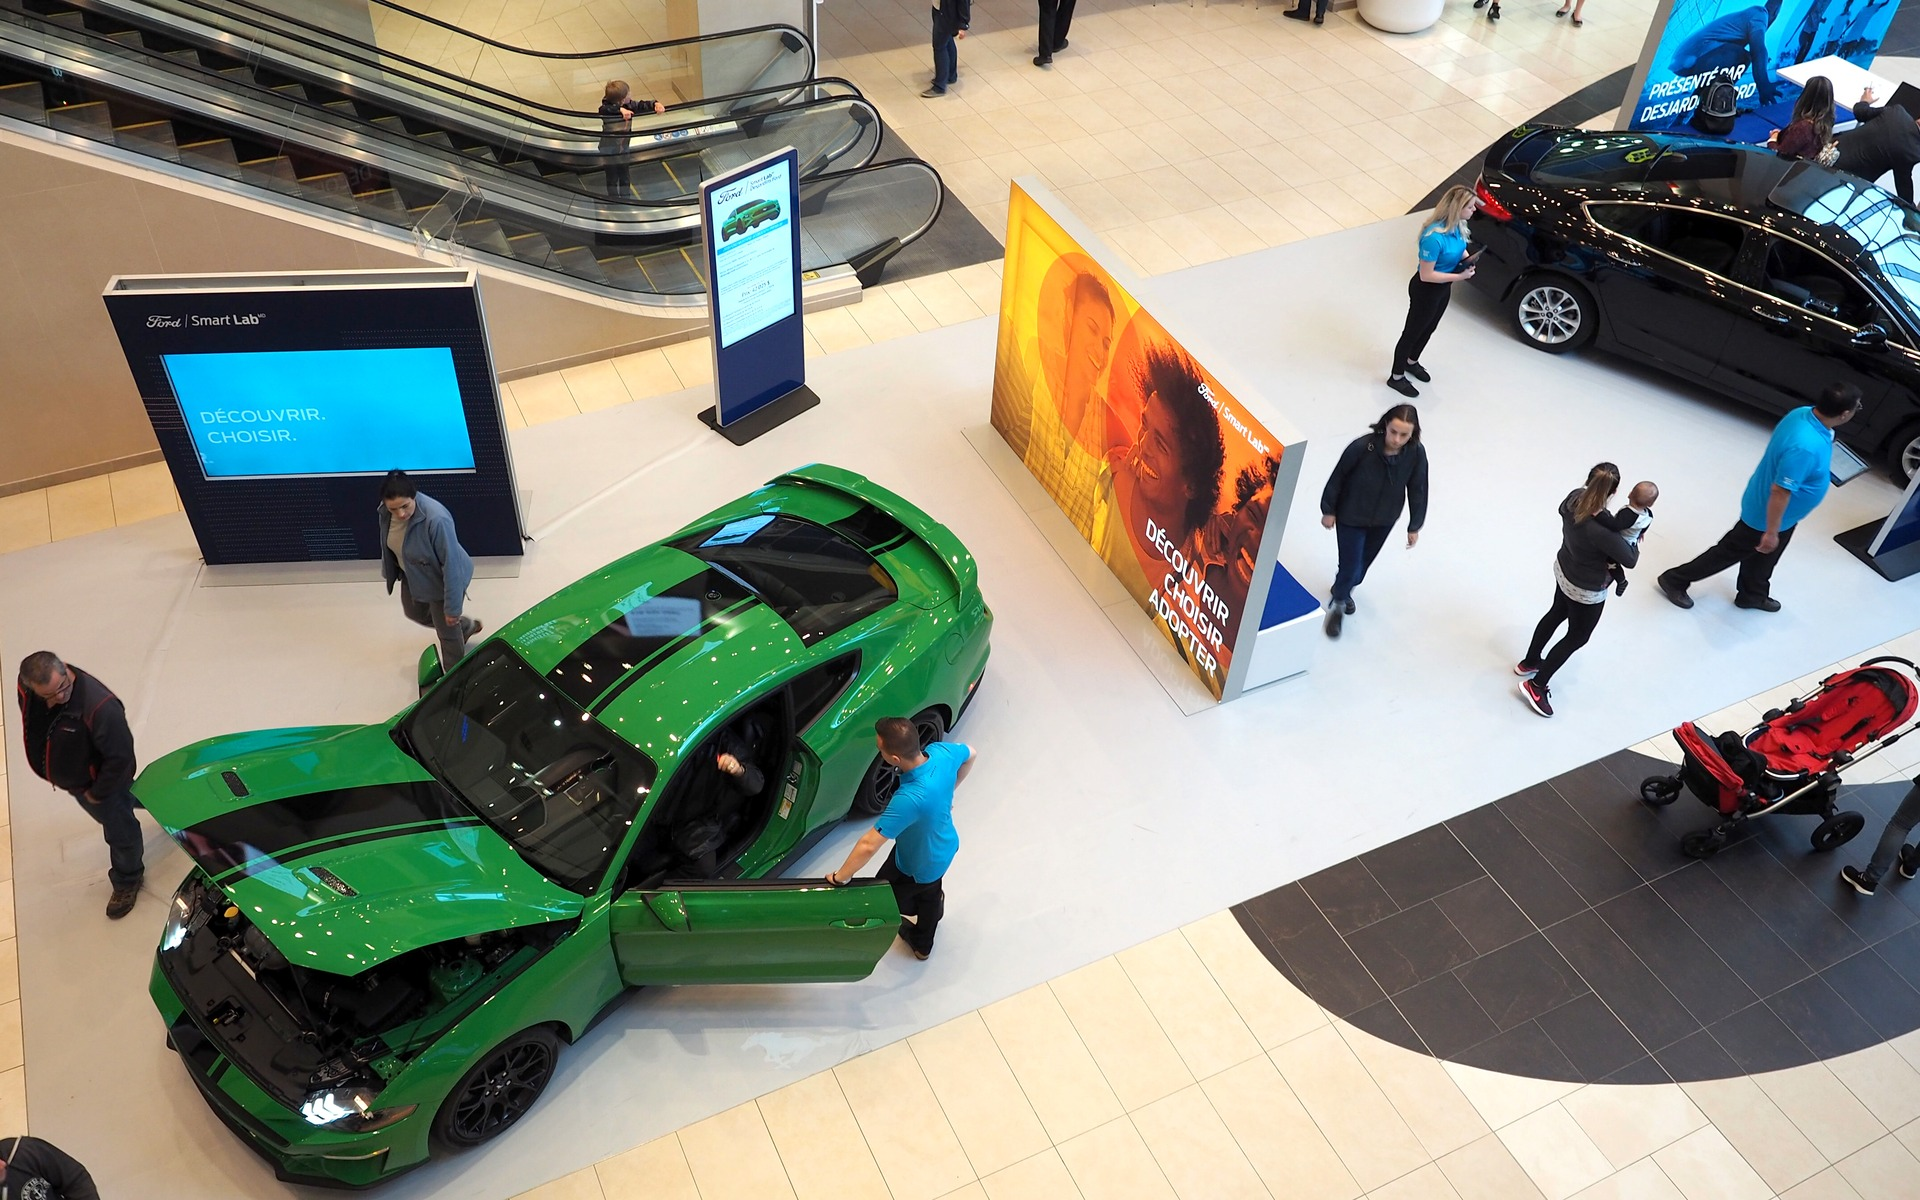 ford smart lab at les galeries de la capitale photo: ford via    guideautoweb.com